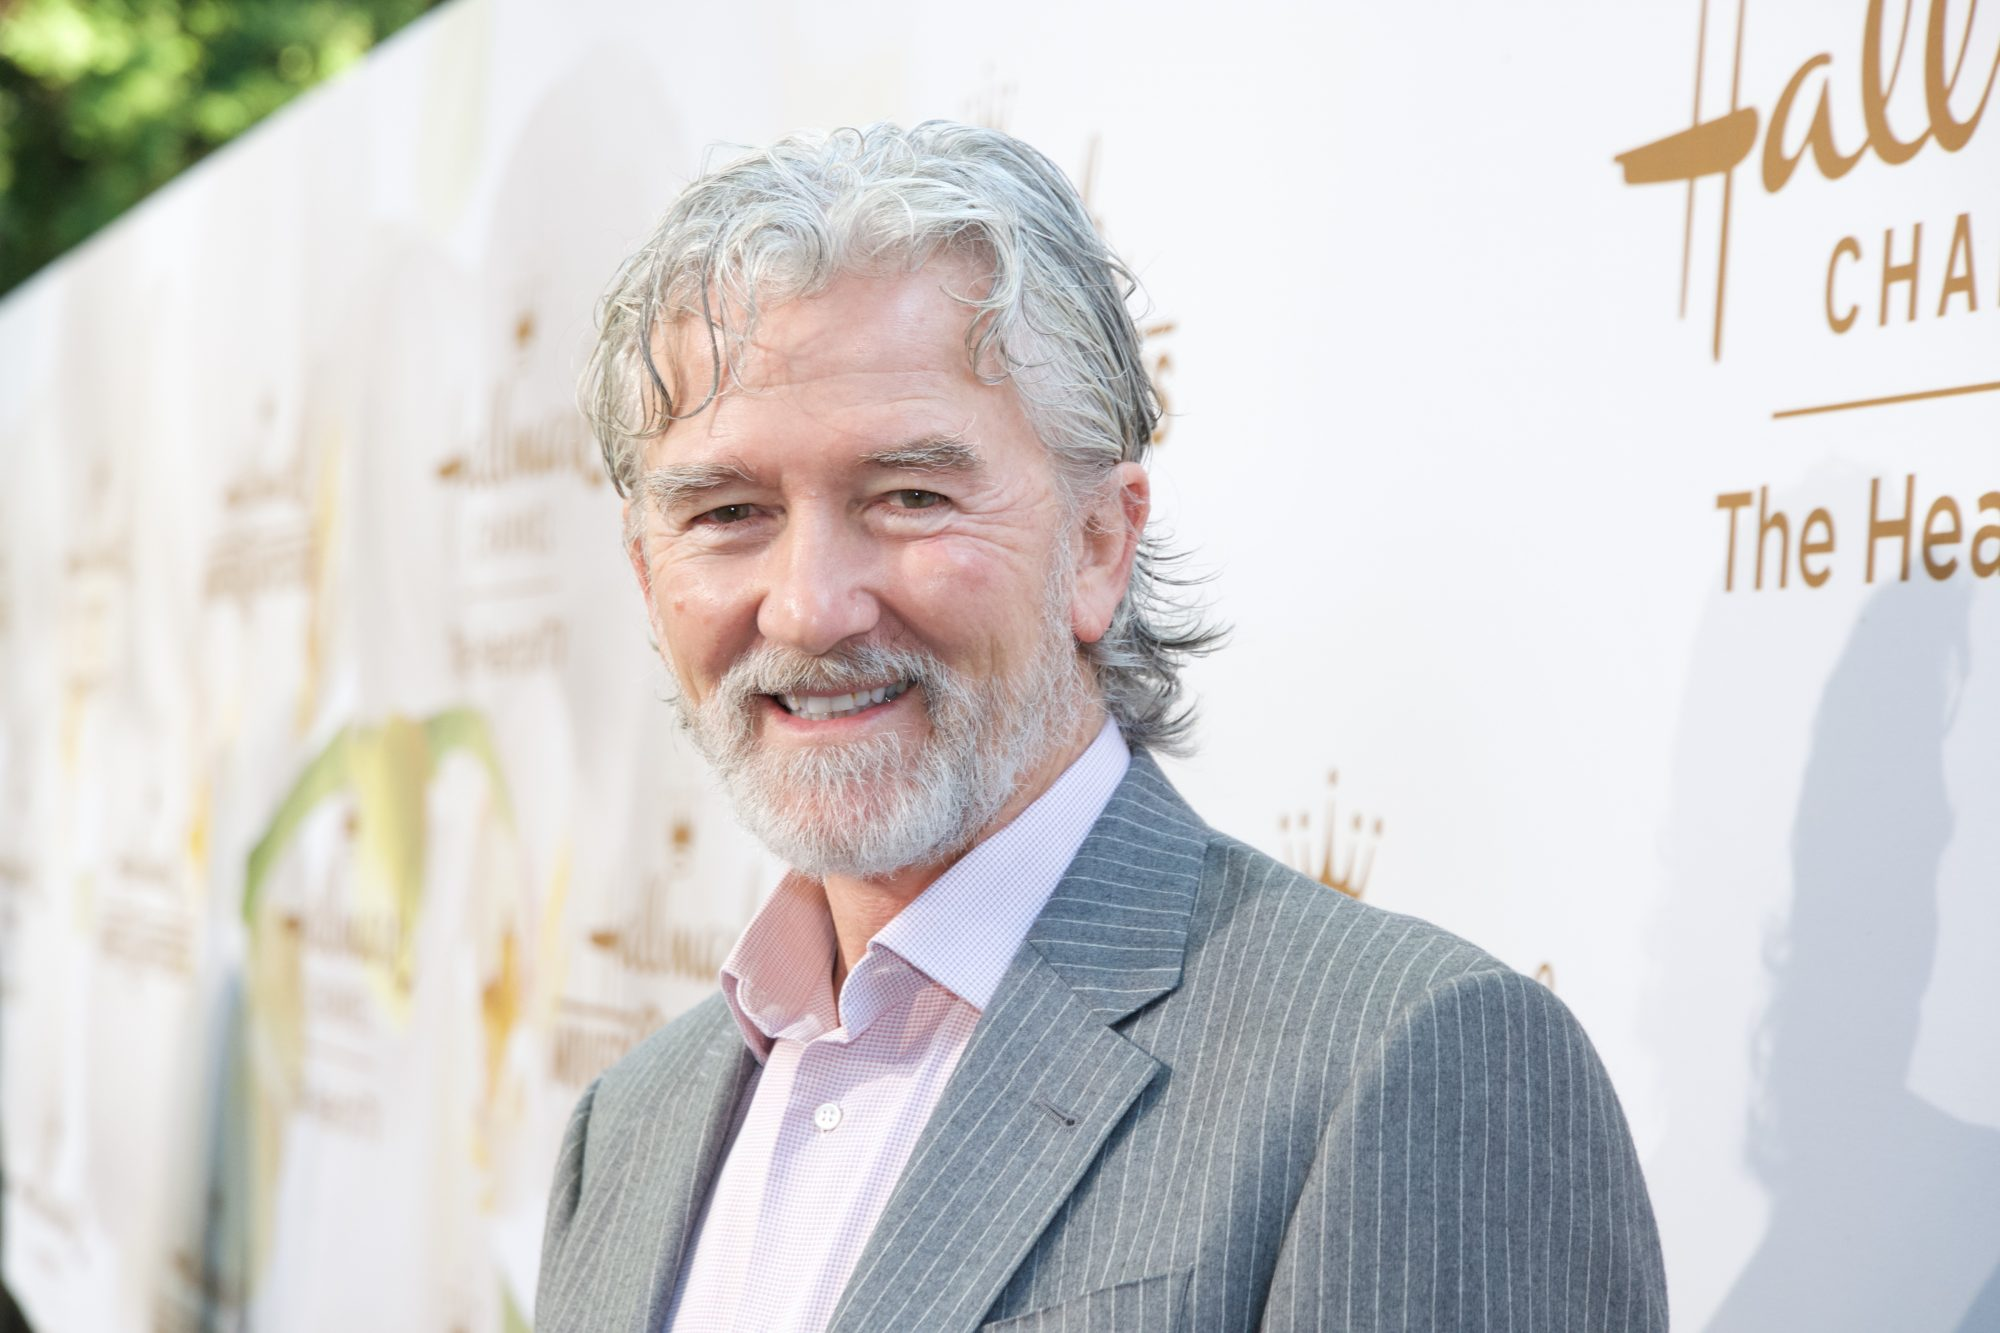 Patrick-Duffy-Theatre-Bar-FT.jpg